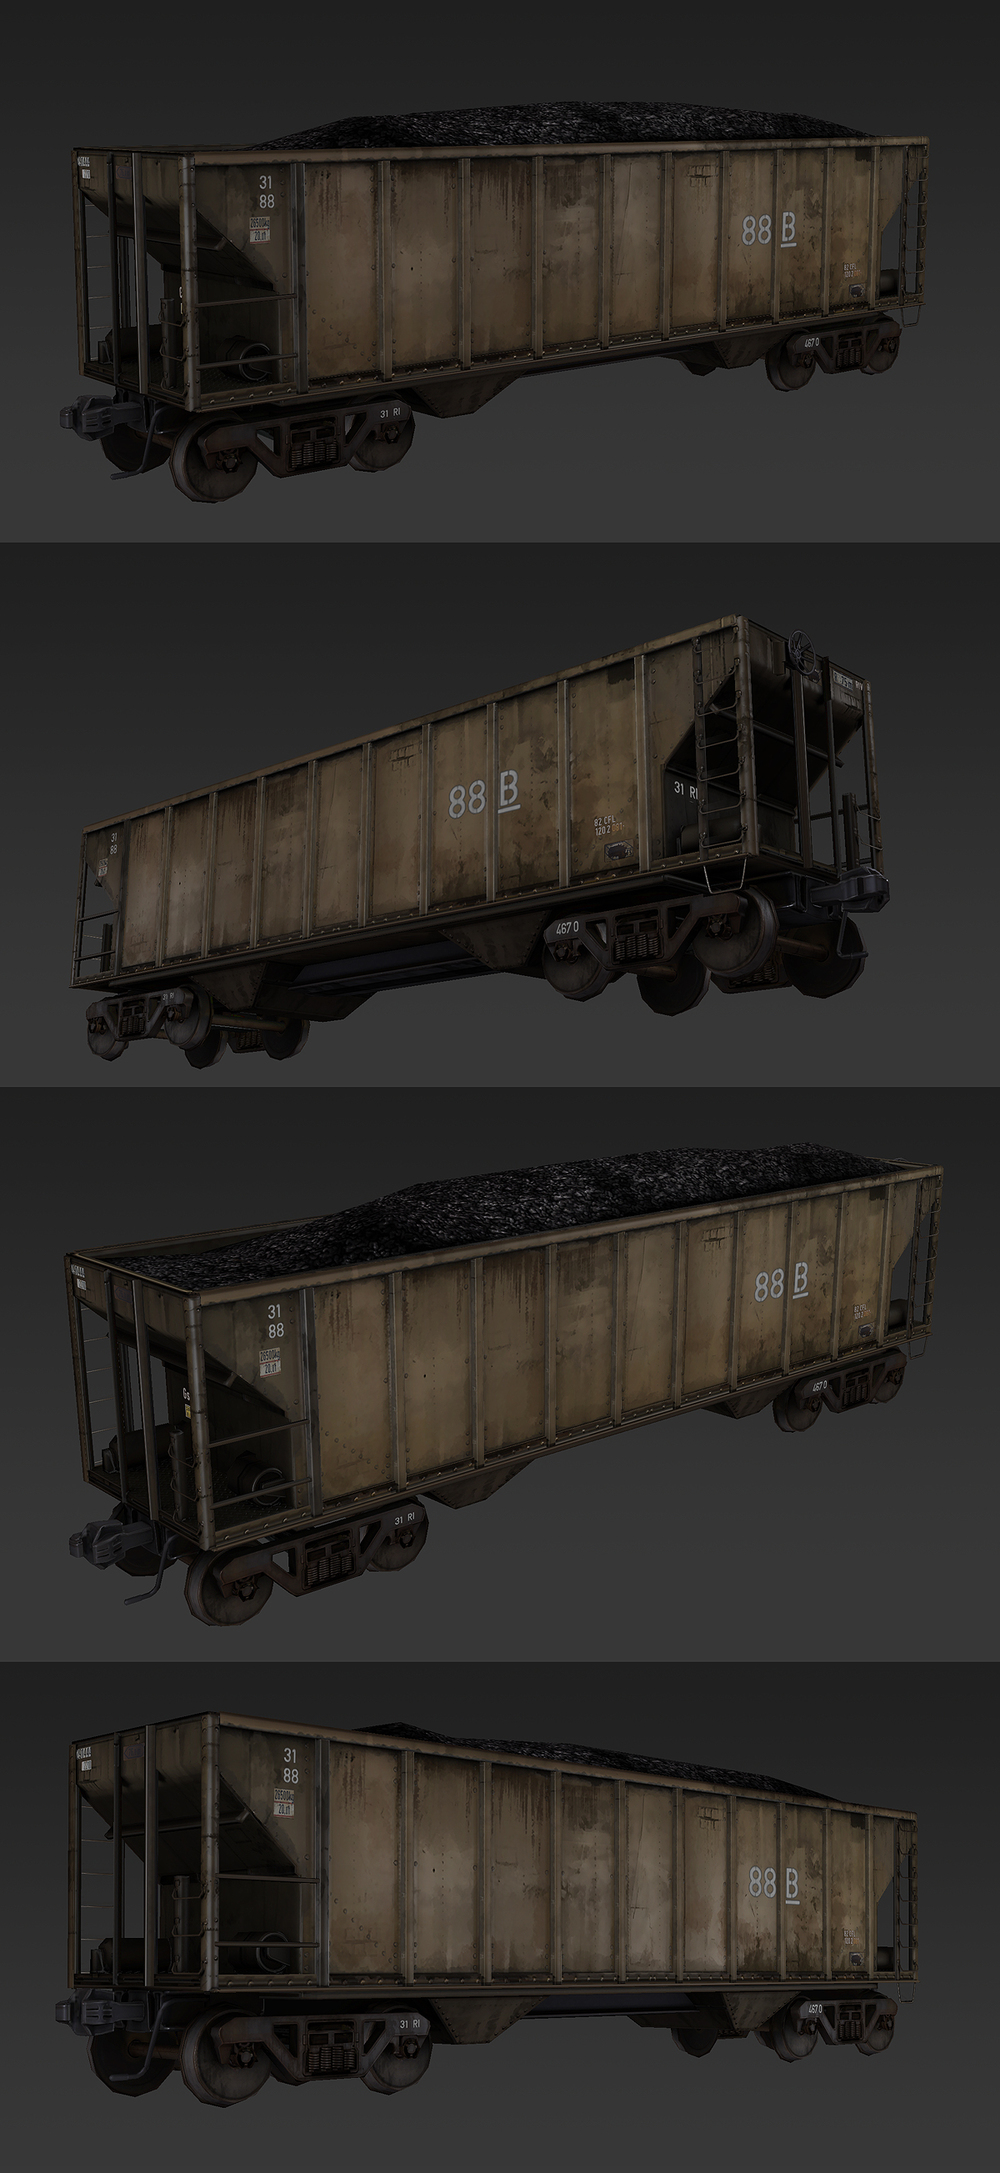 trainopentophopper_textured.jpg